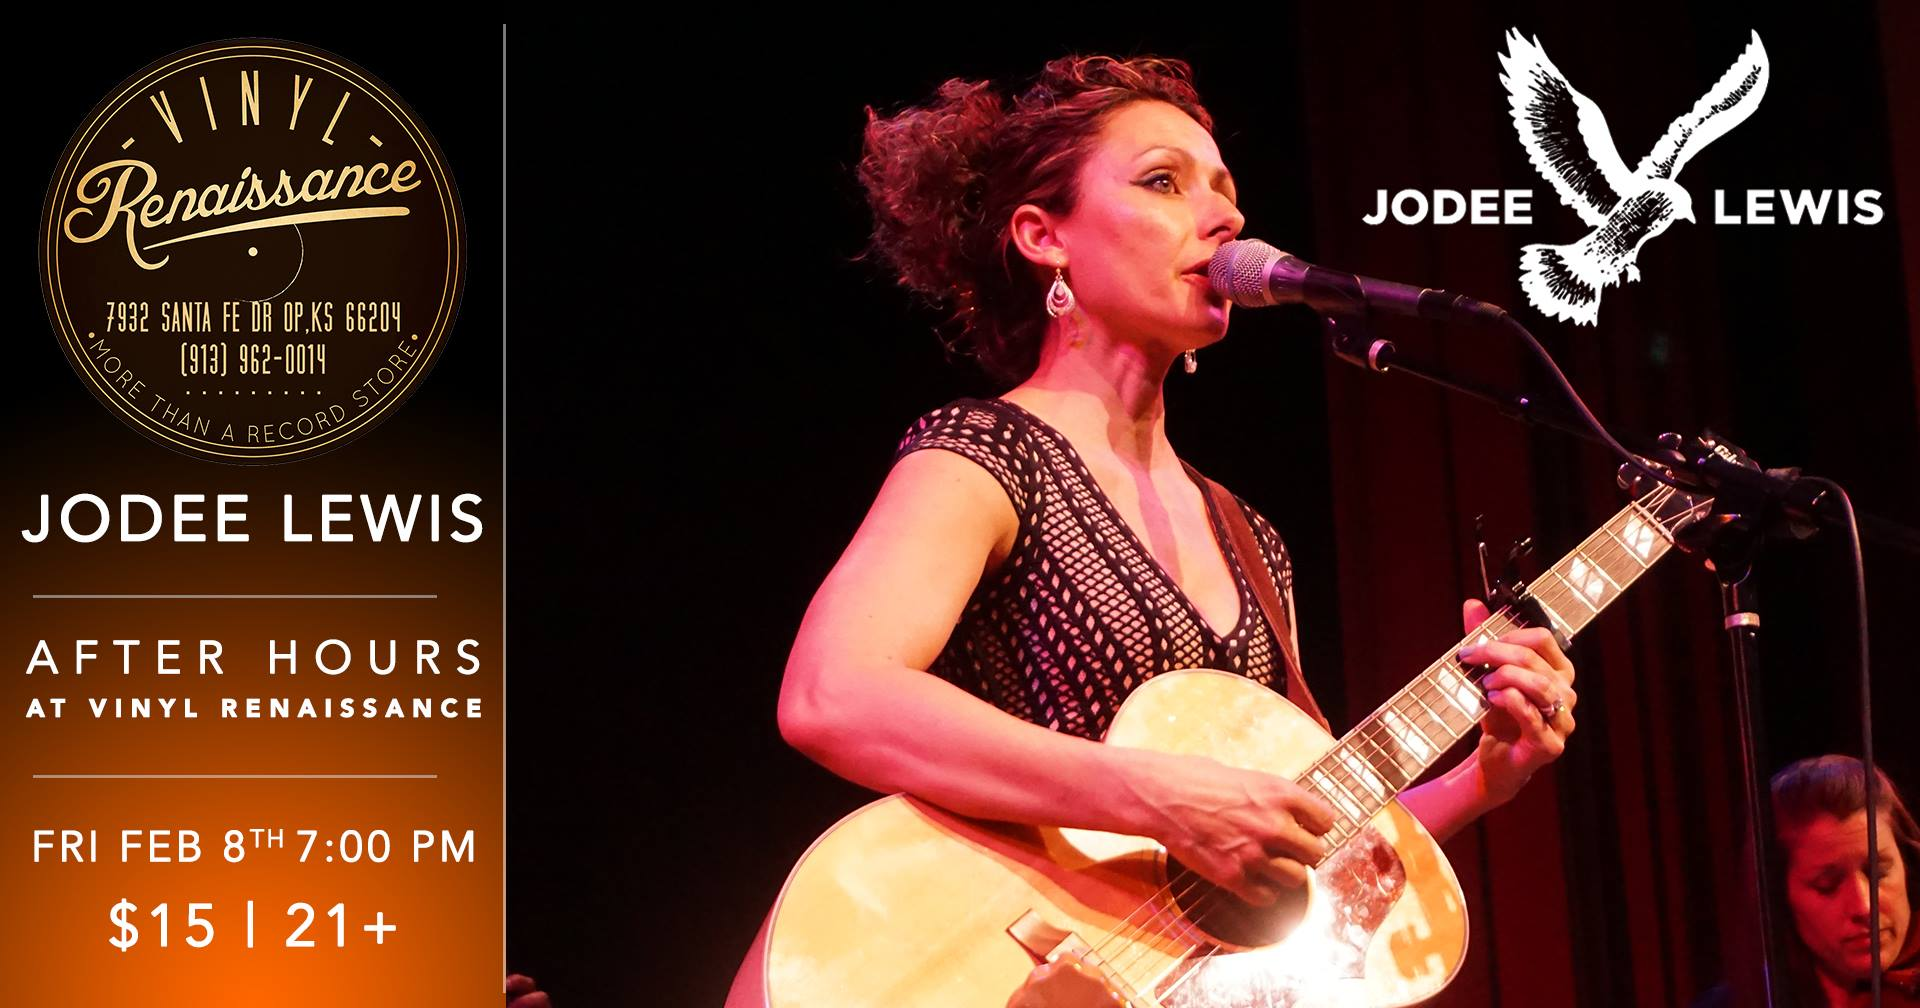 Jodee Lewis After Hours Concert February 8 @ 7:00 PM